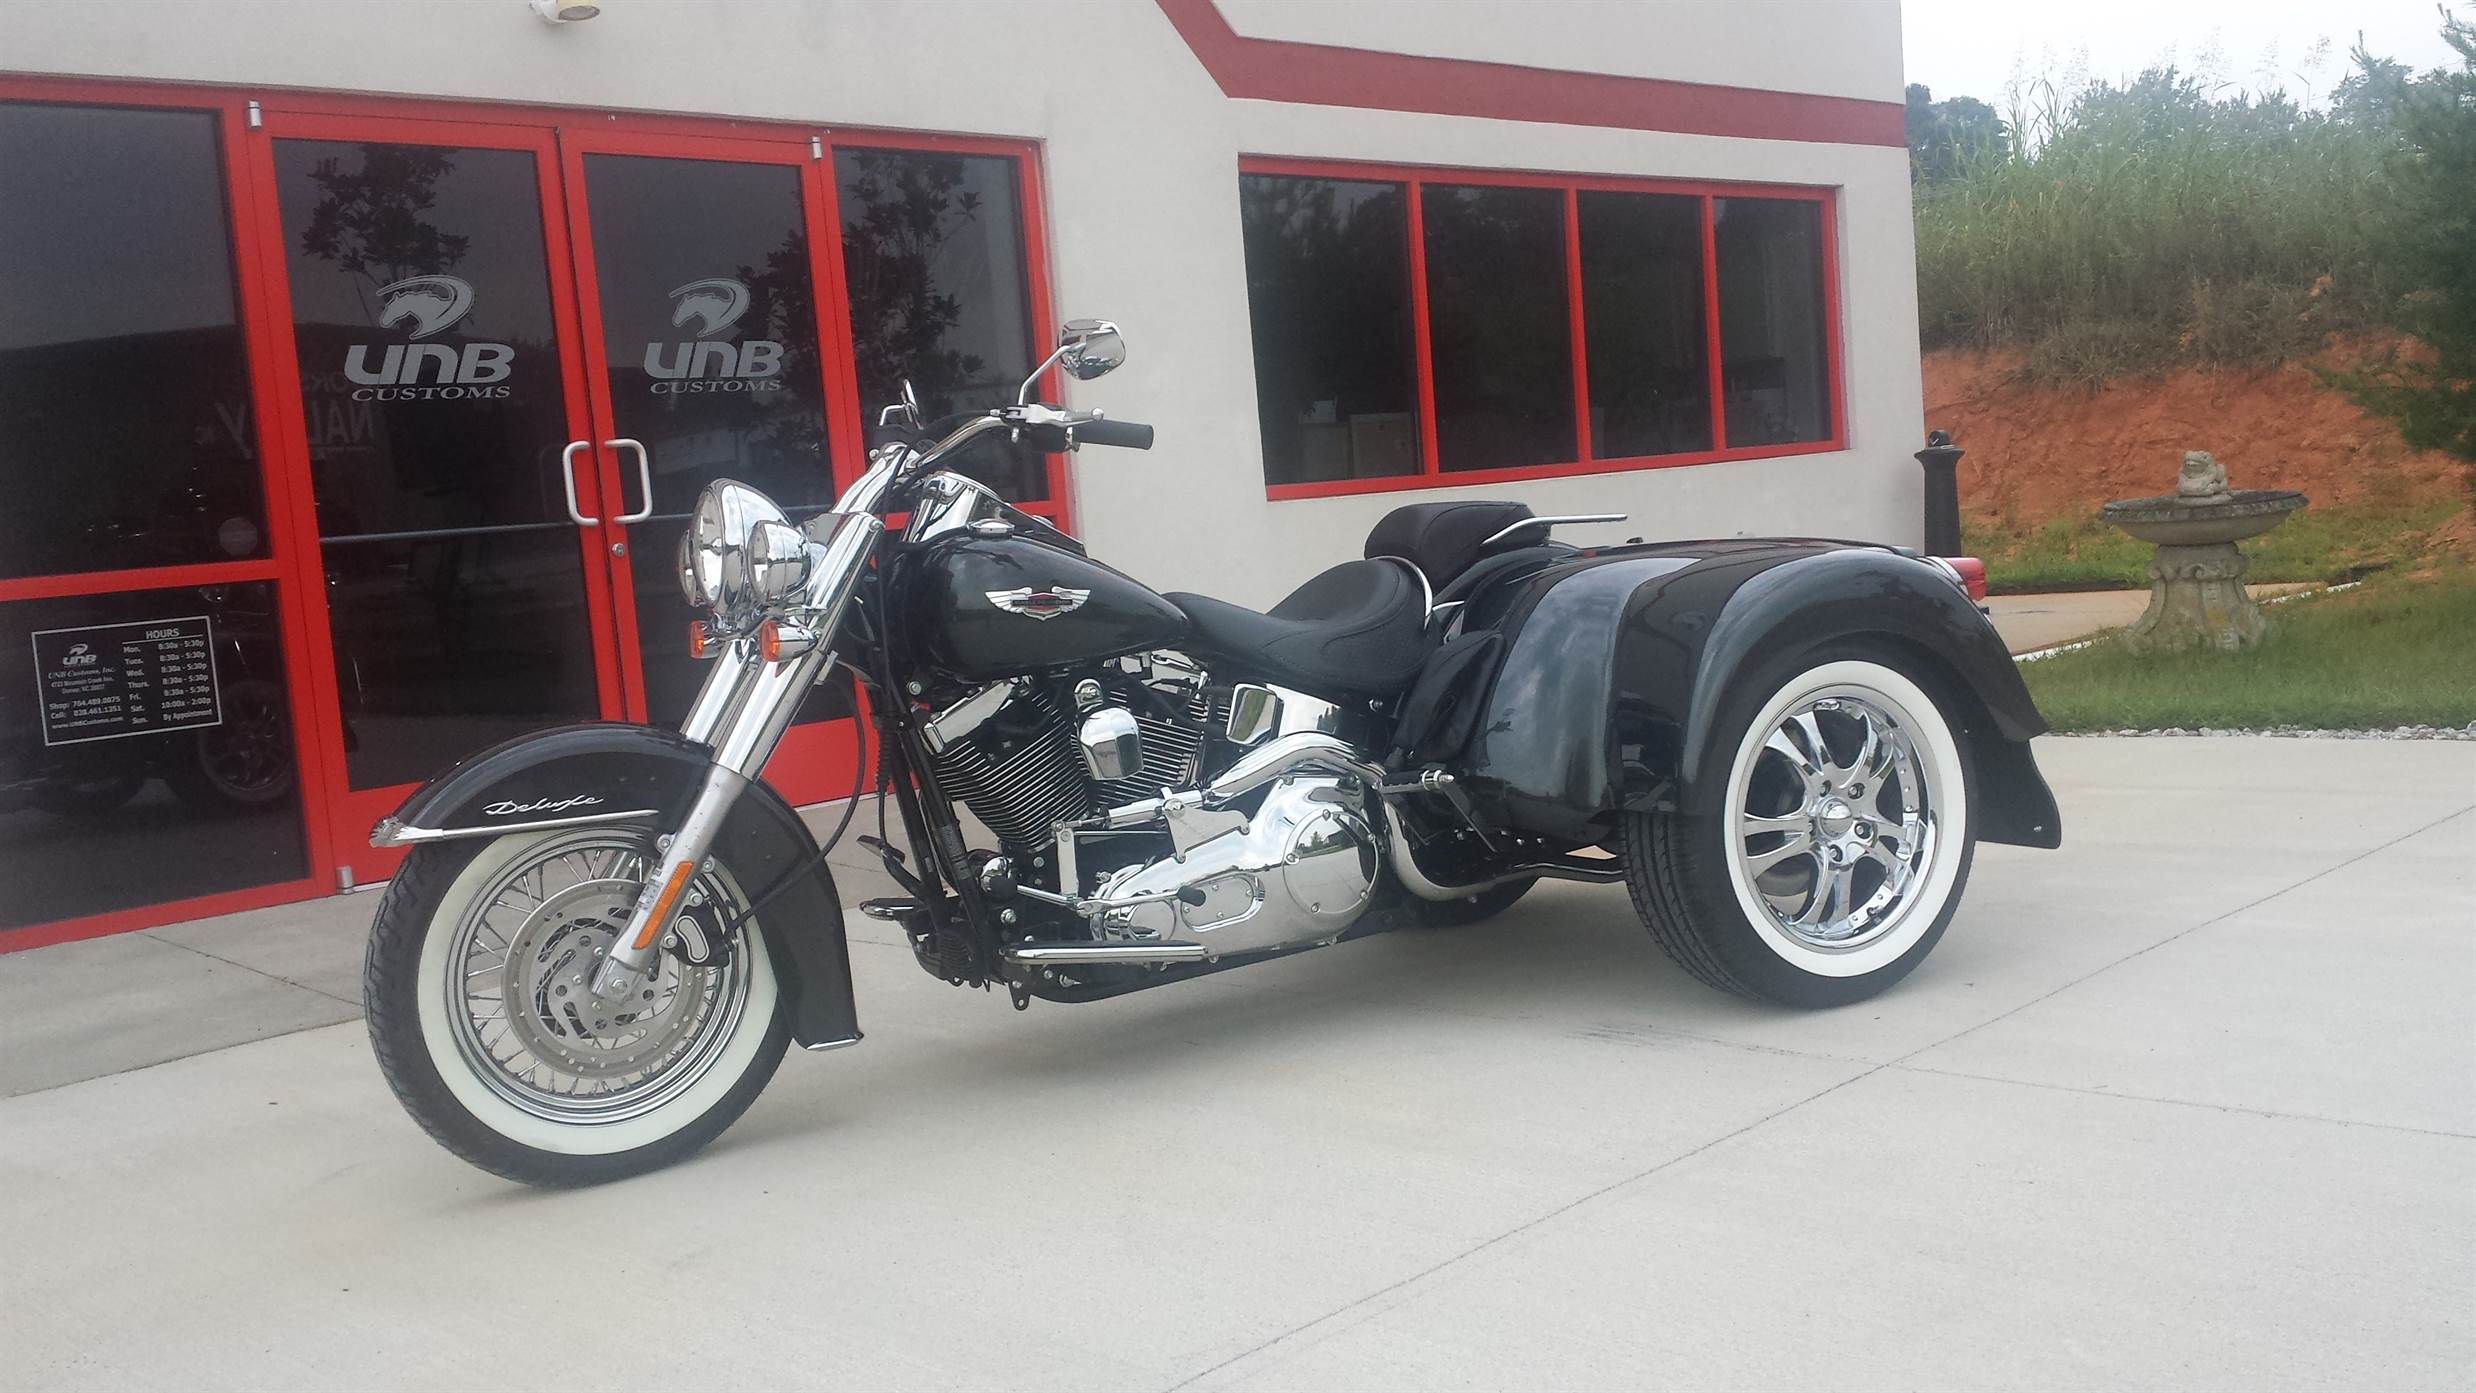 Independent suspension Softail trike painted to match